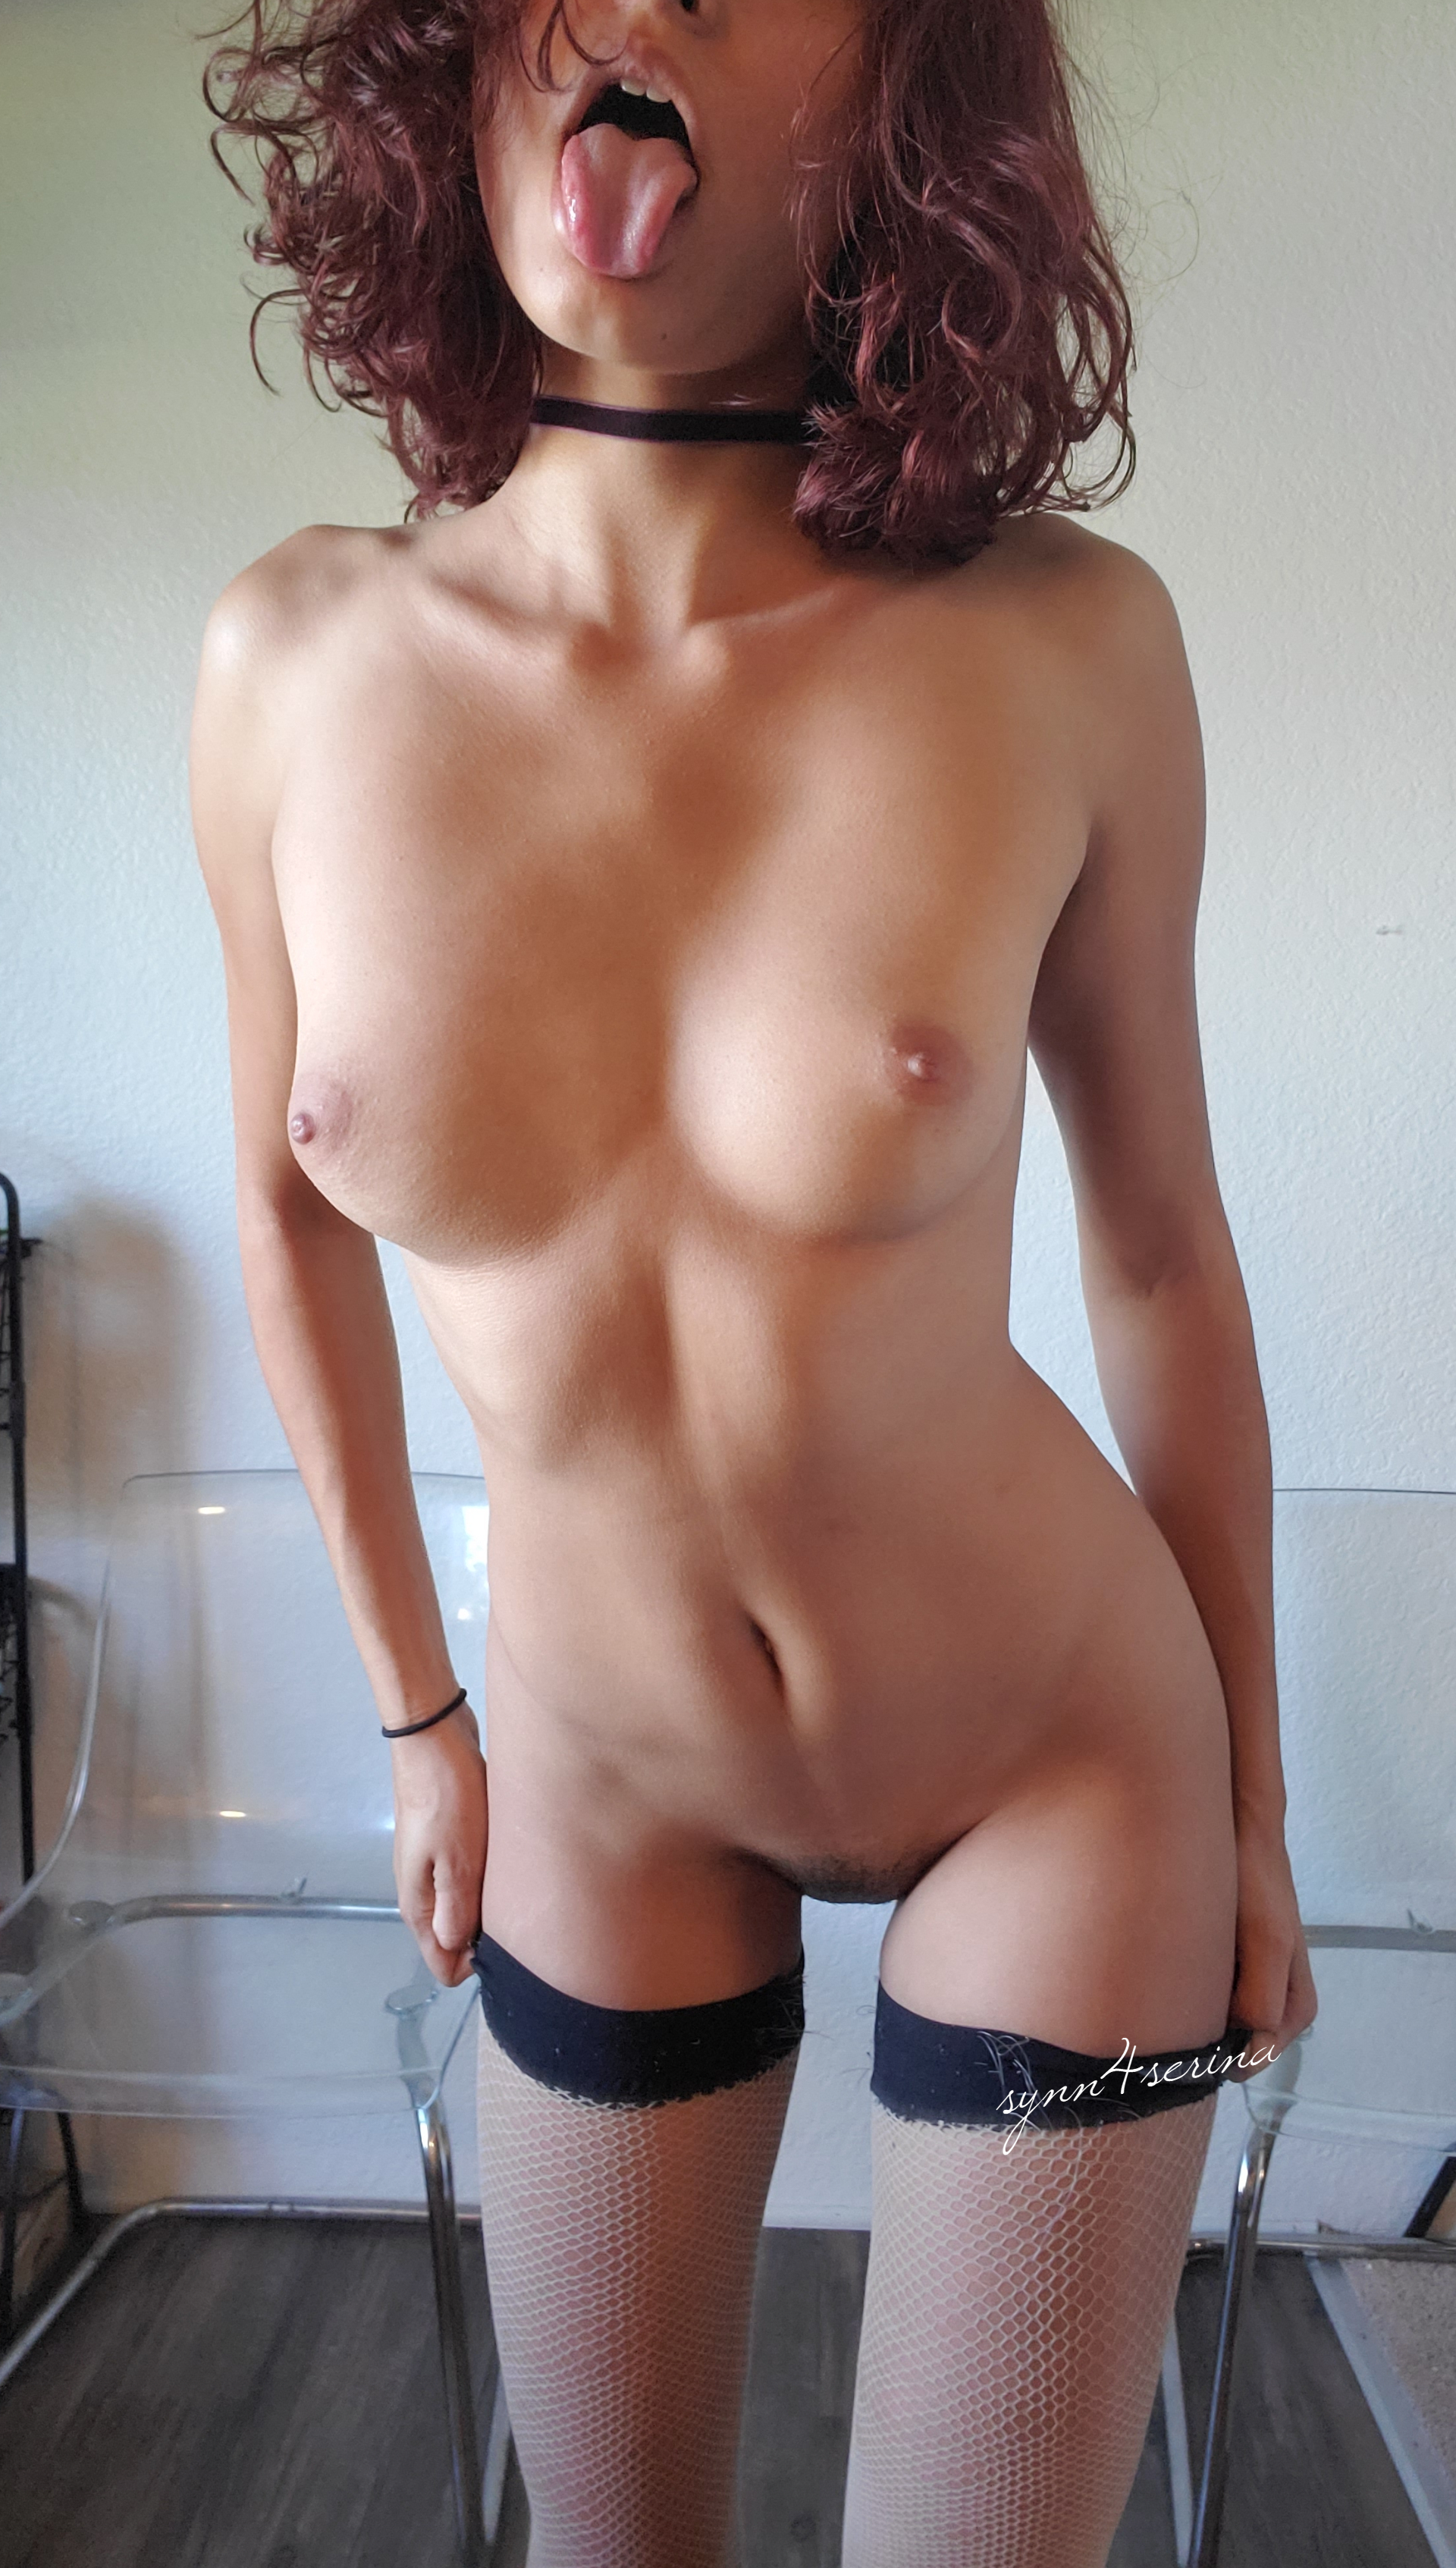 nude asian booty homemade porn sex picture gallery and sex clips